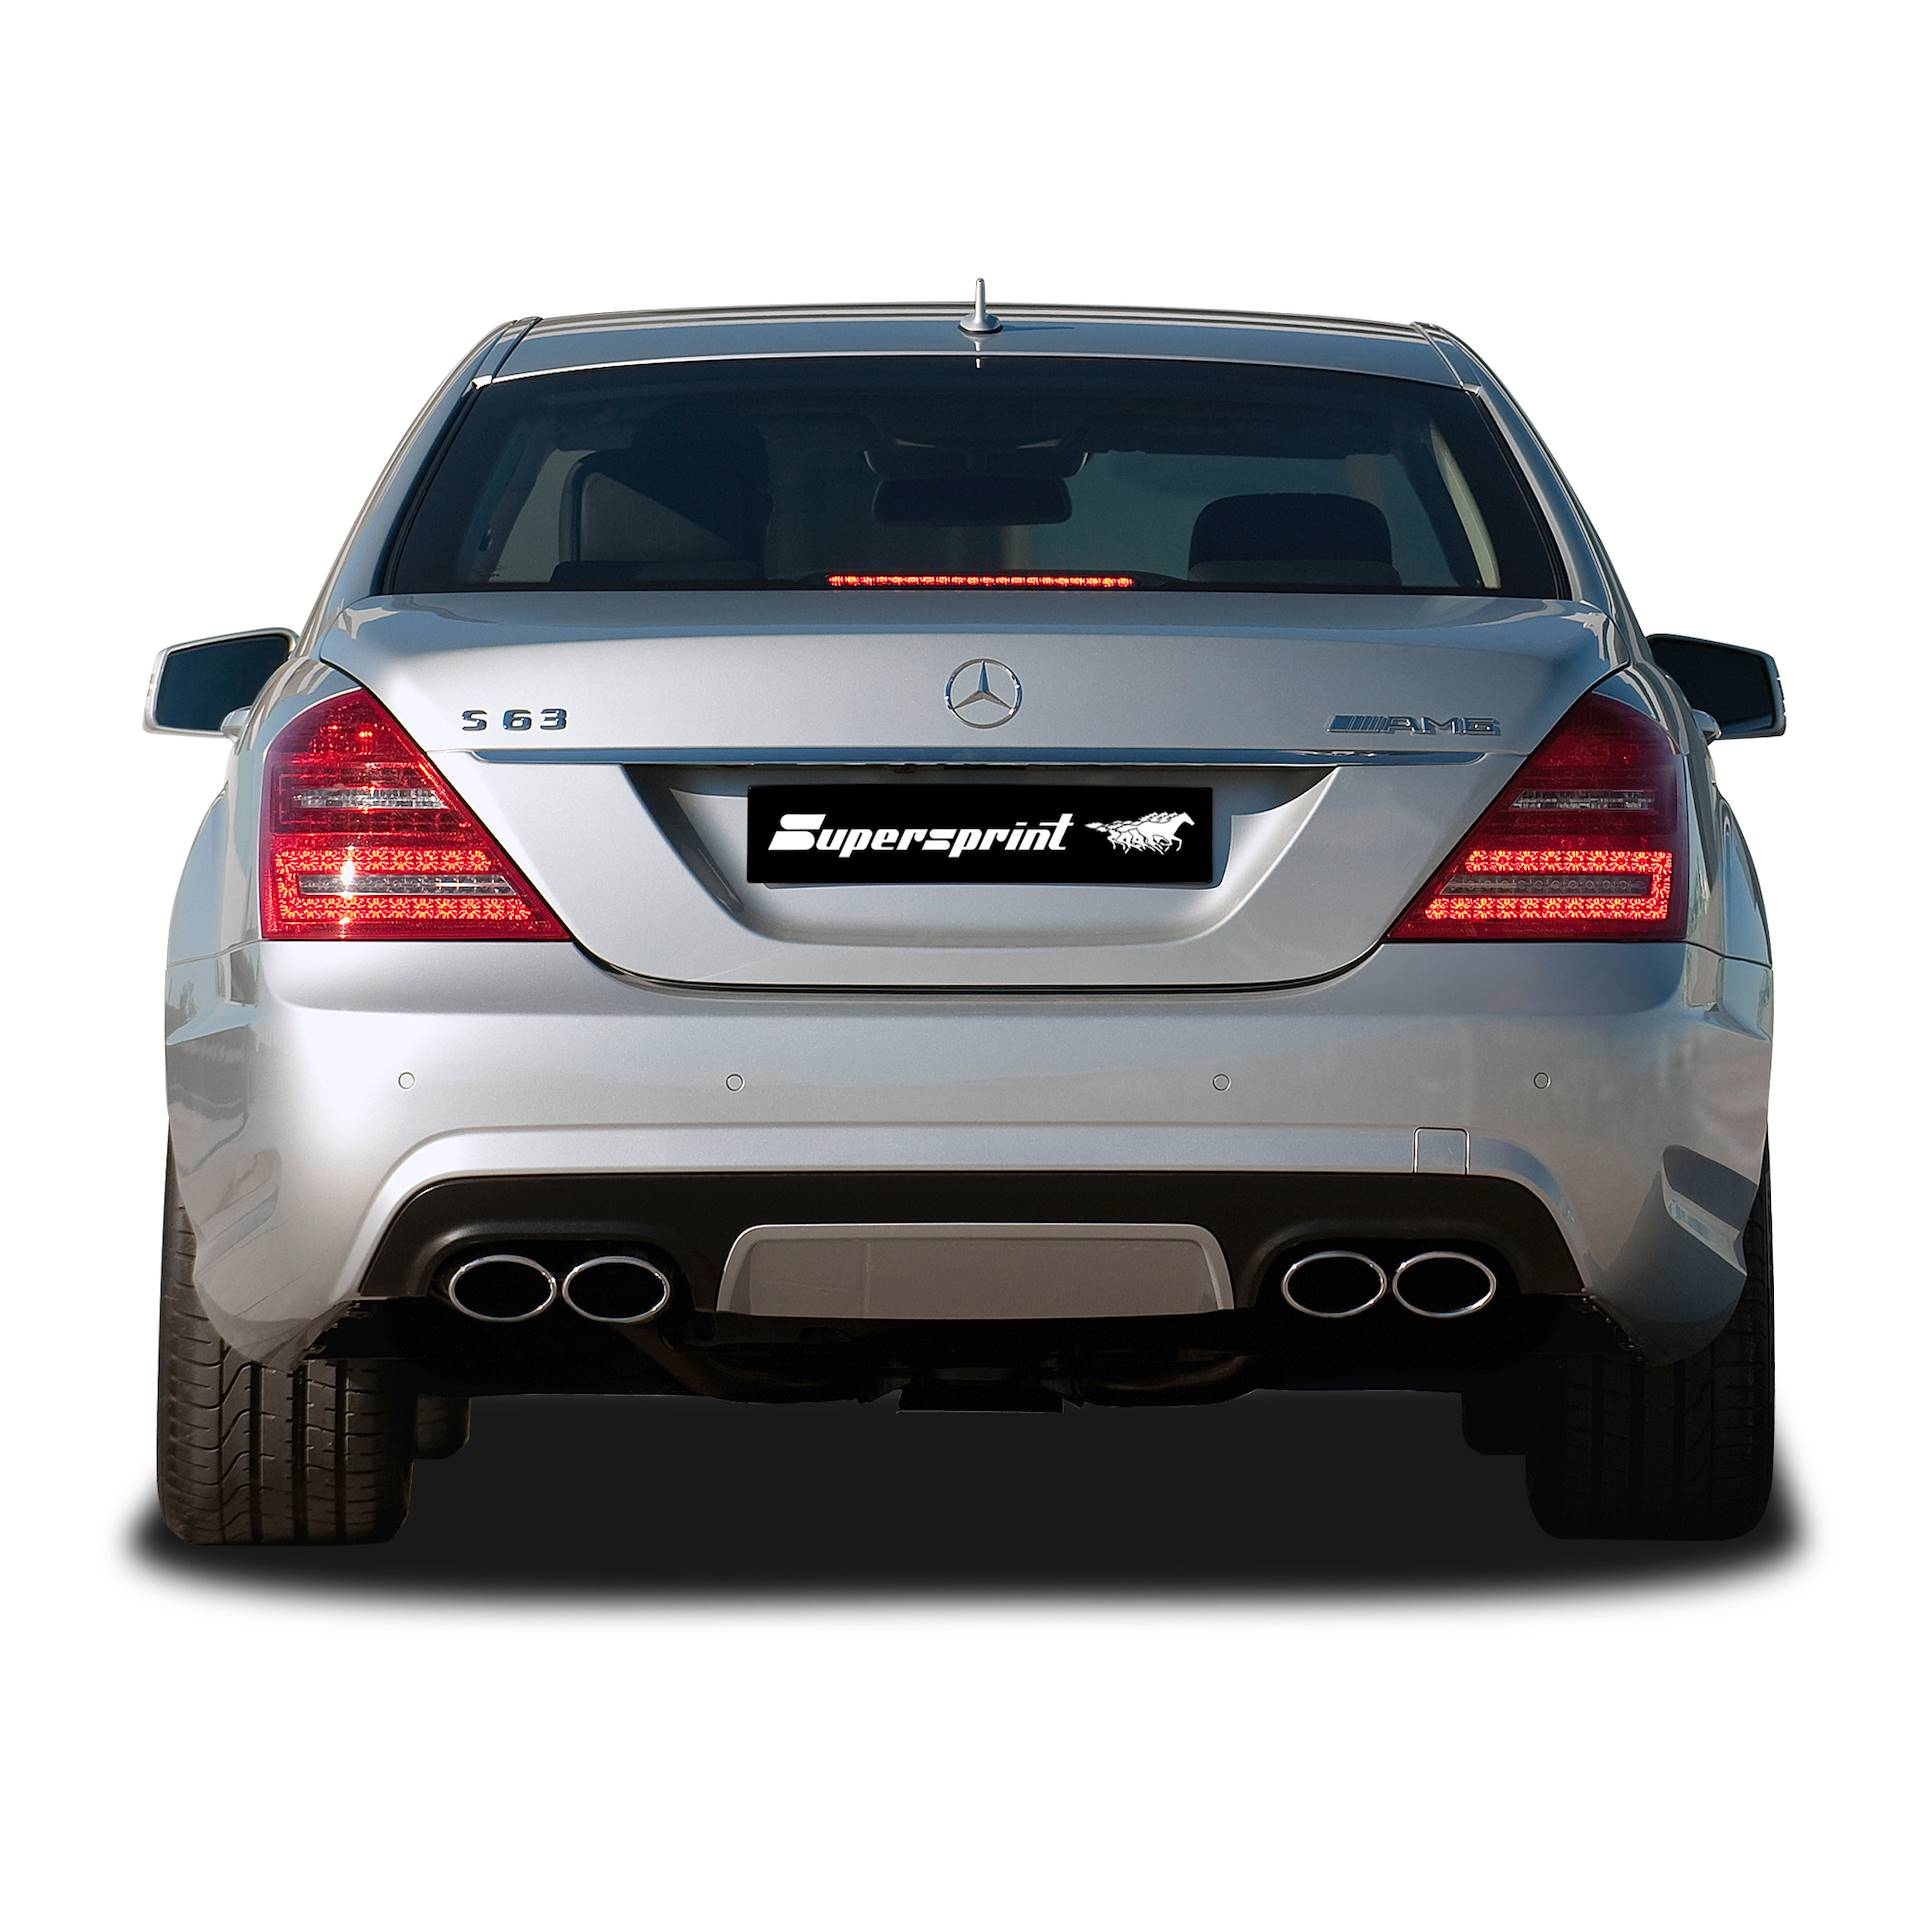 Mercedes AMG - MERCEDES W221 S 63 AMG V8 (M156 - 525 Hp) 2007 -> 2010 (with valve)